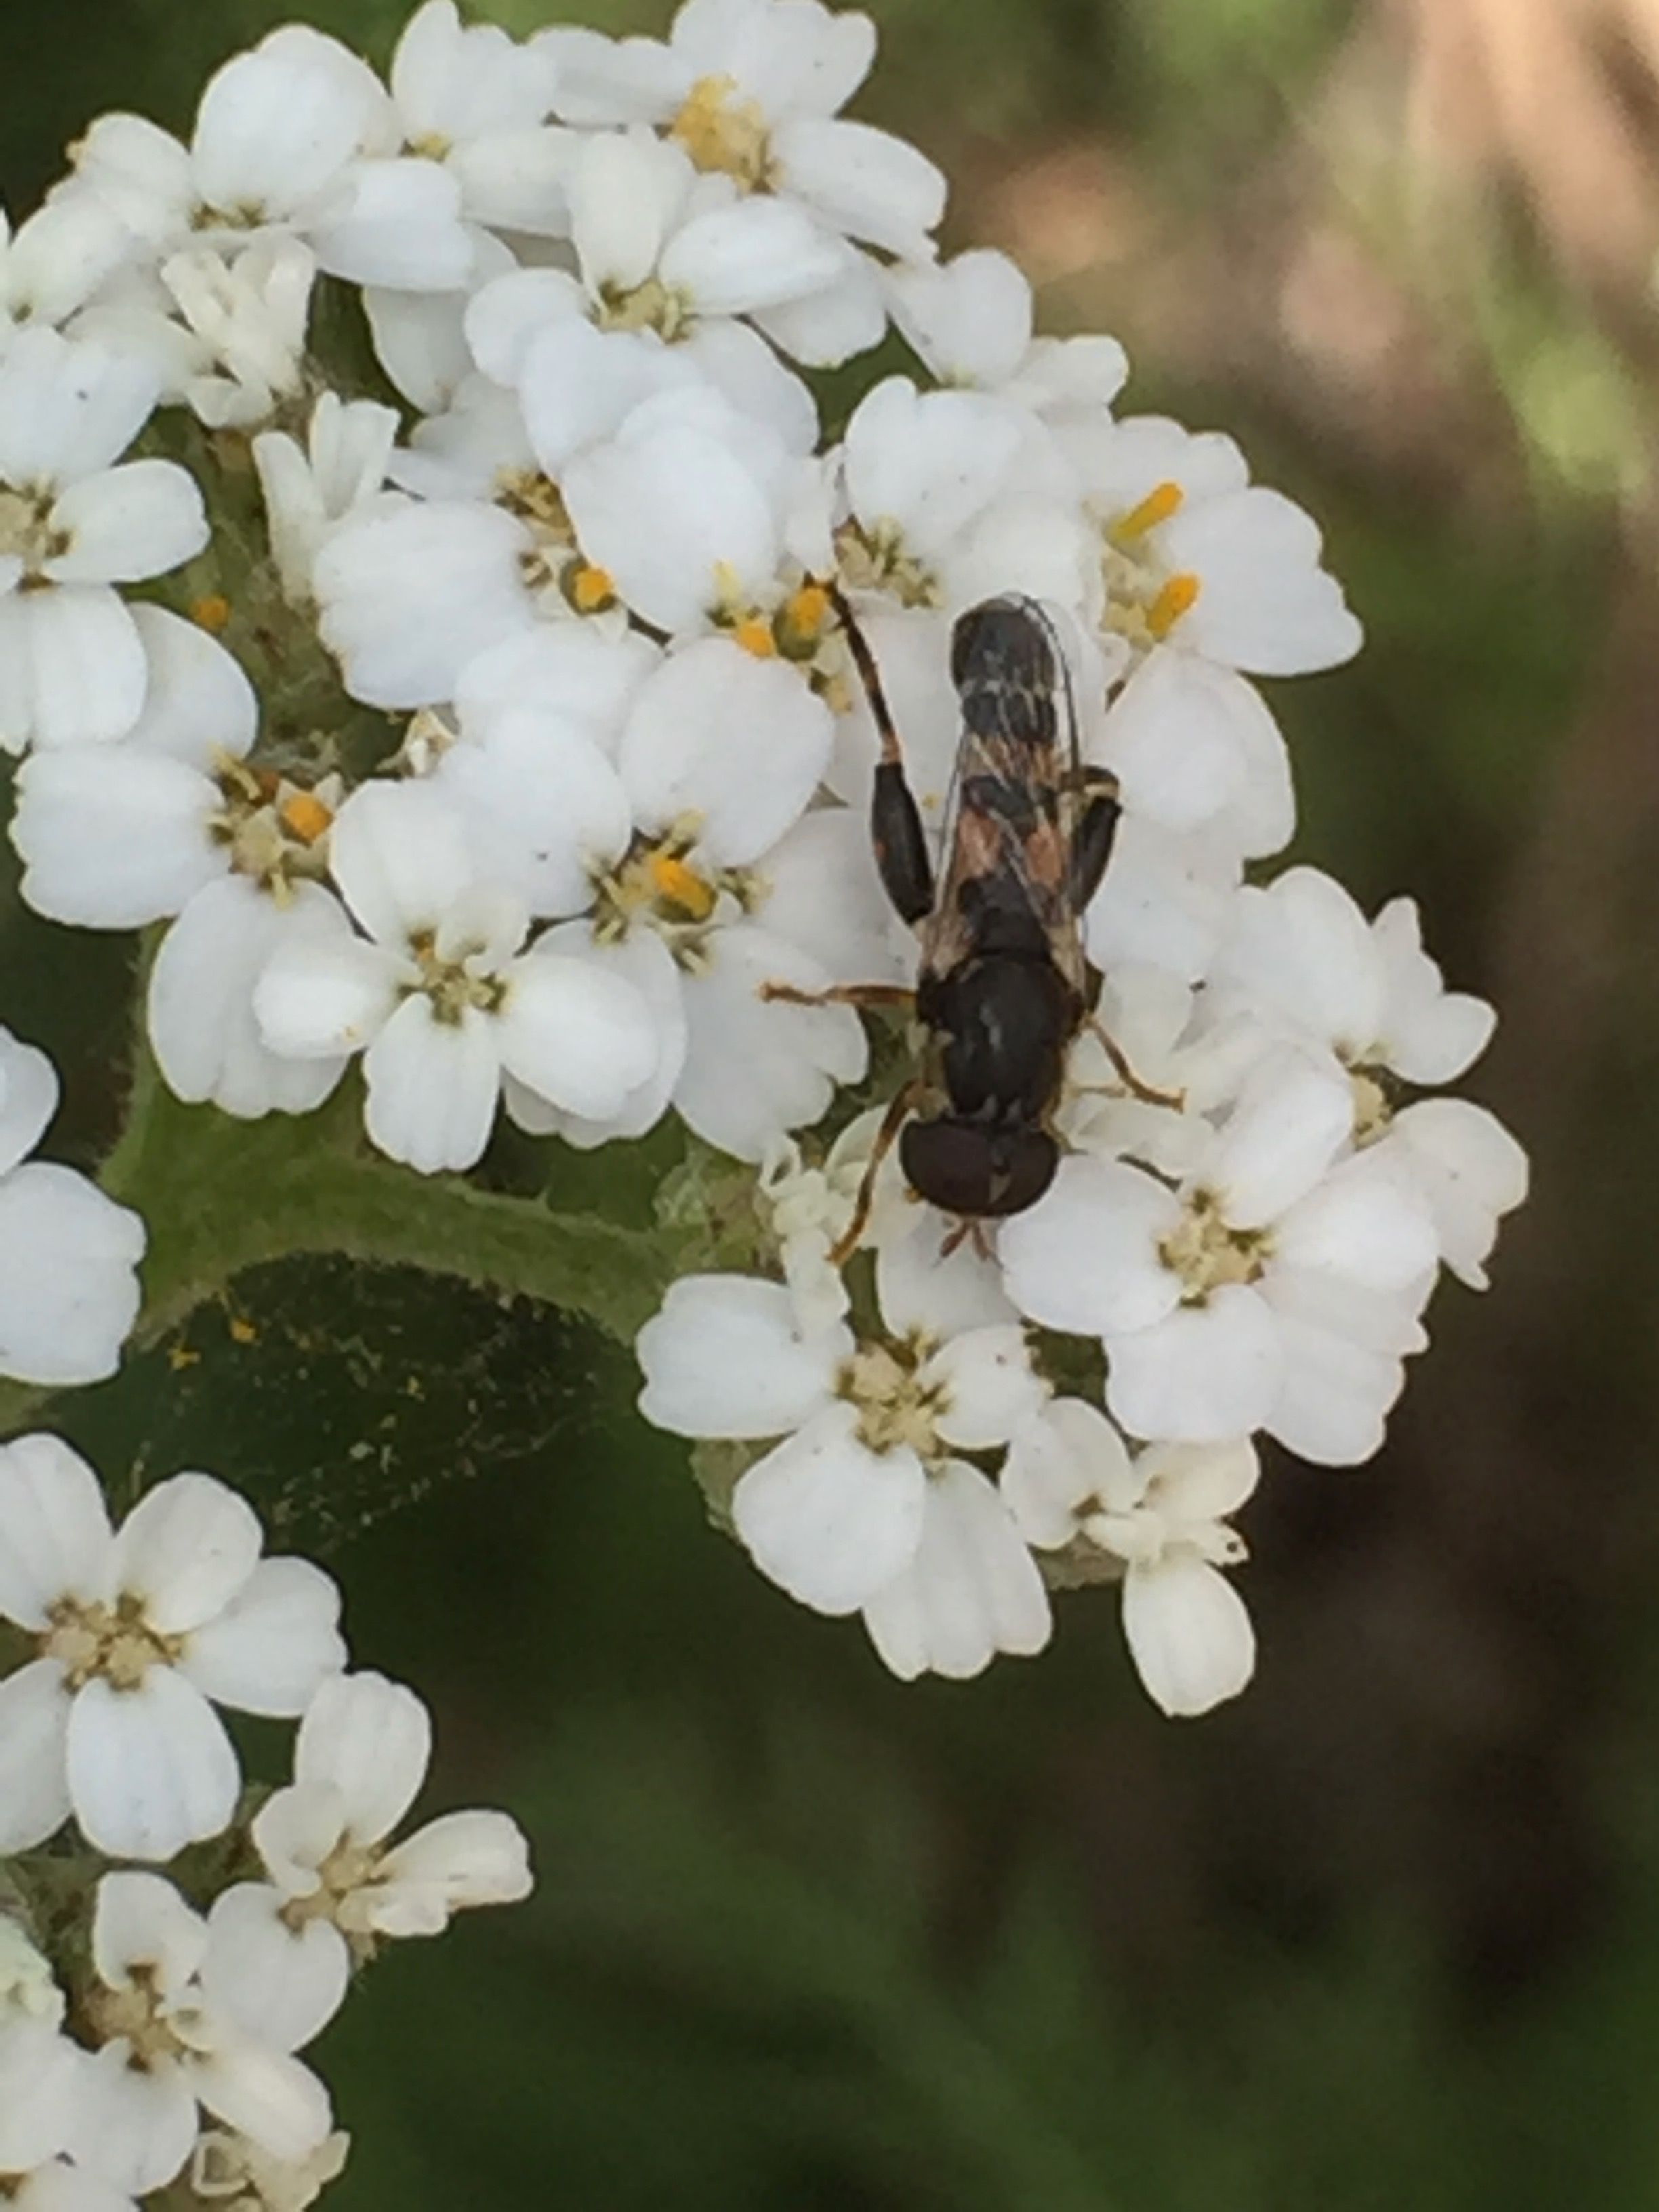 I'm pretty sure this is a  Sphaerophoria philanthus,  or syrphid fly